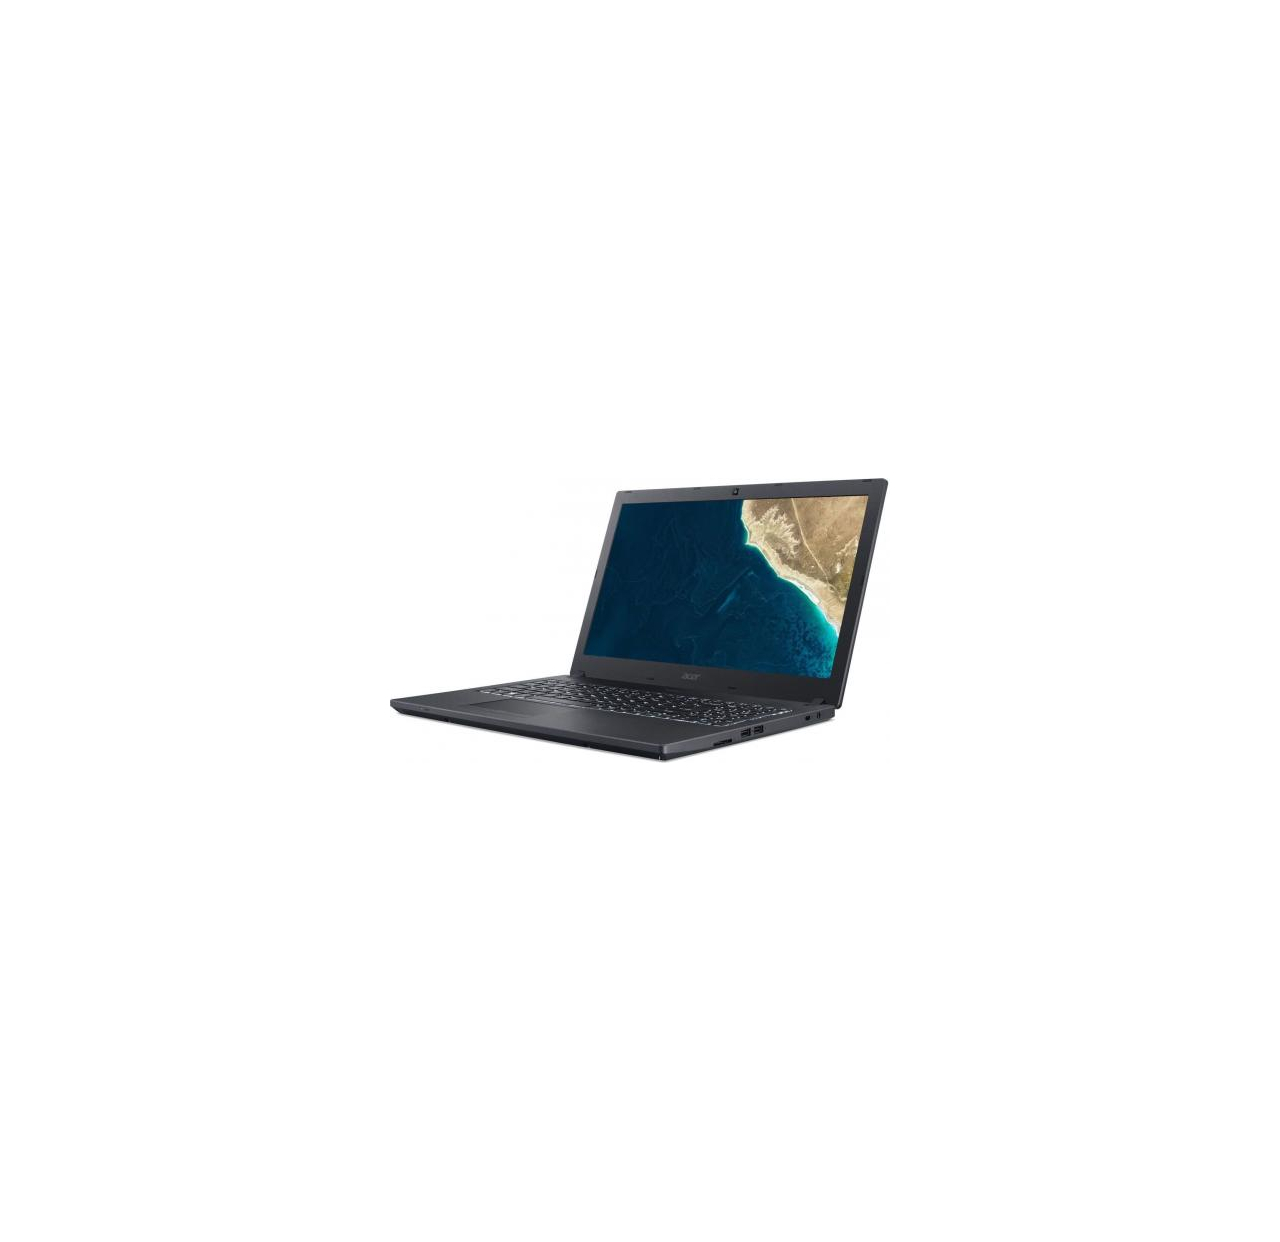 "Laptop Acer TMP2510-G2-M-57AJ / Intel® Core™ i5-8250U / 15.6"" FHD Acer ComfyView LED LCD / U"